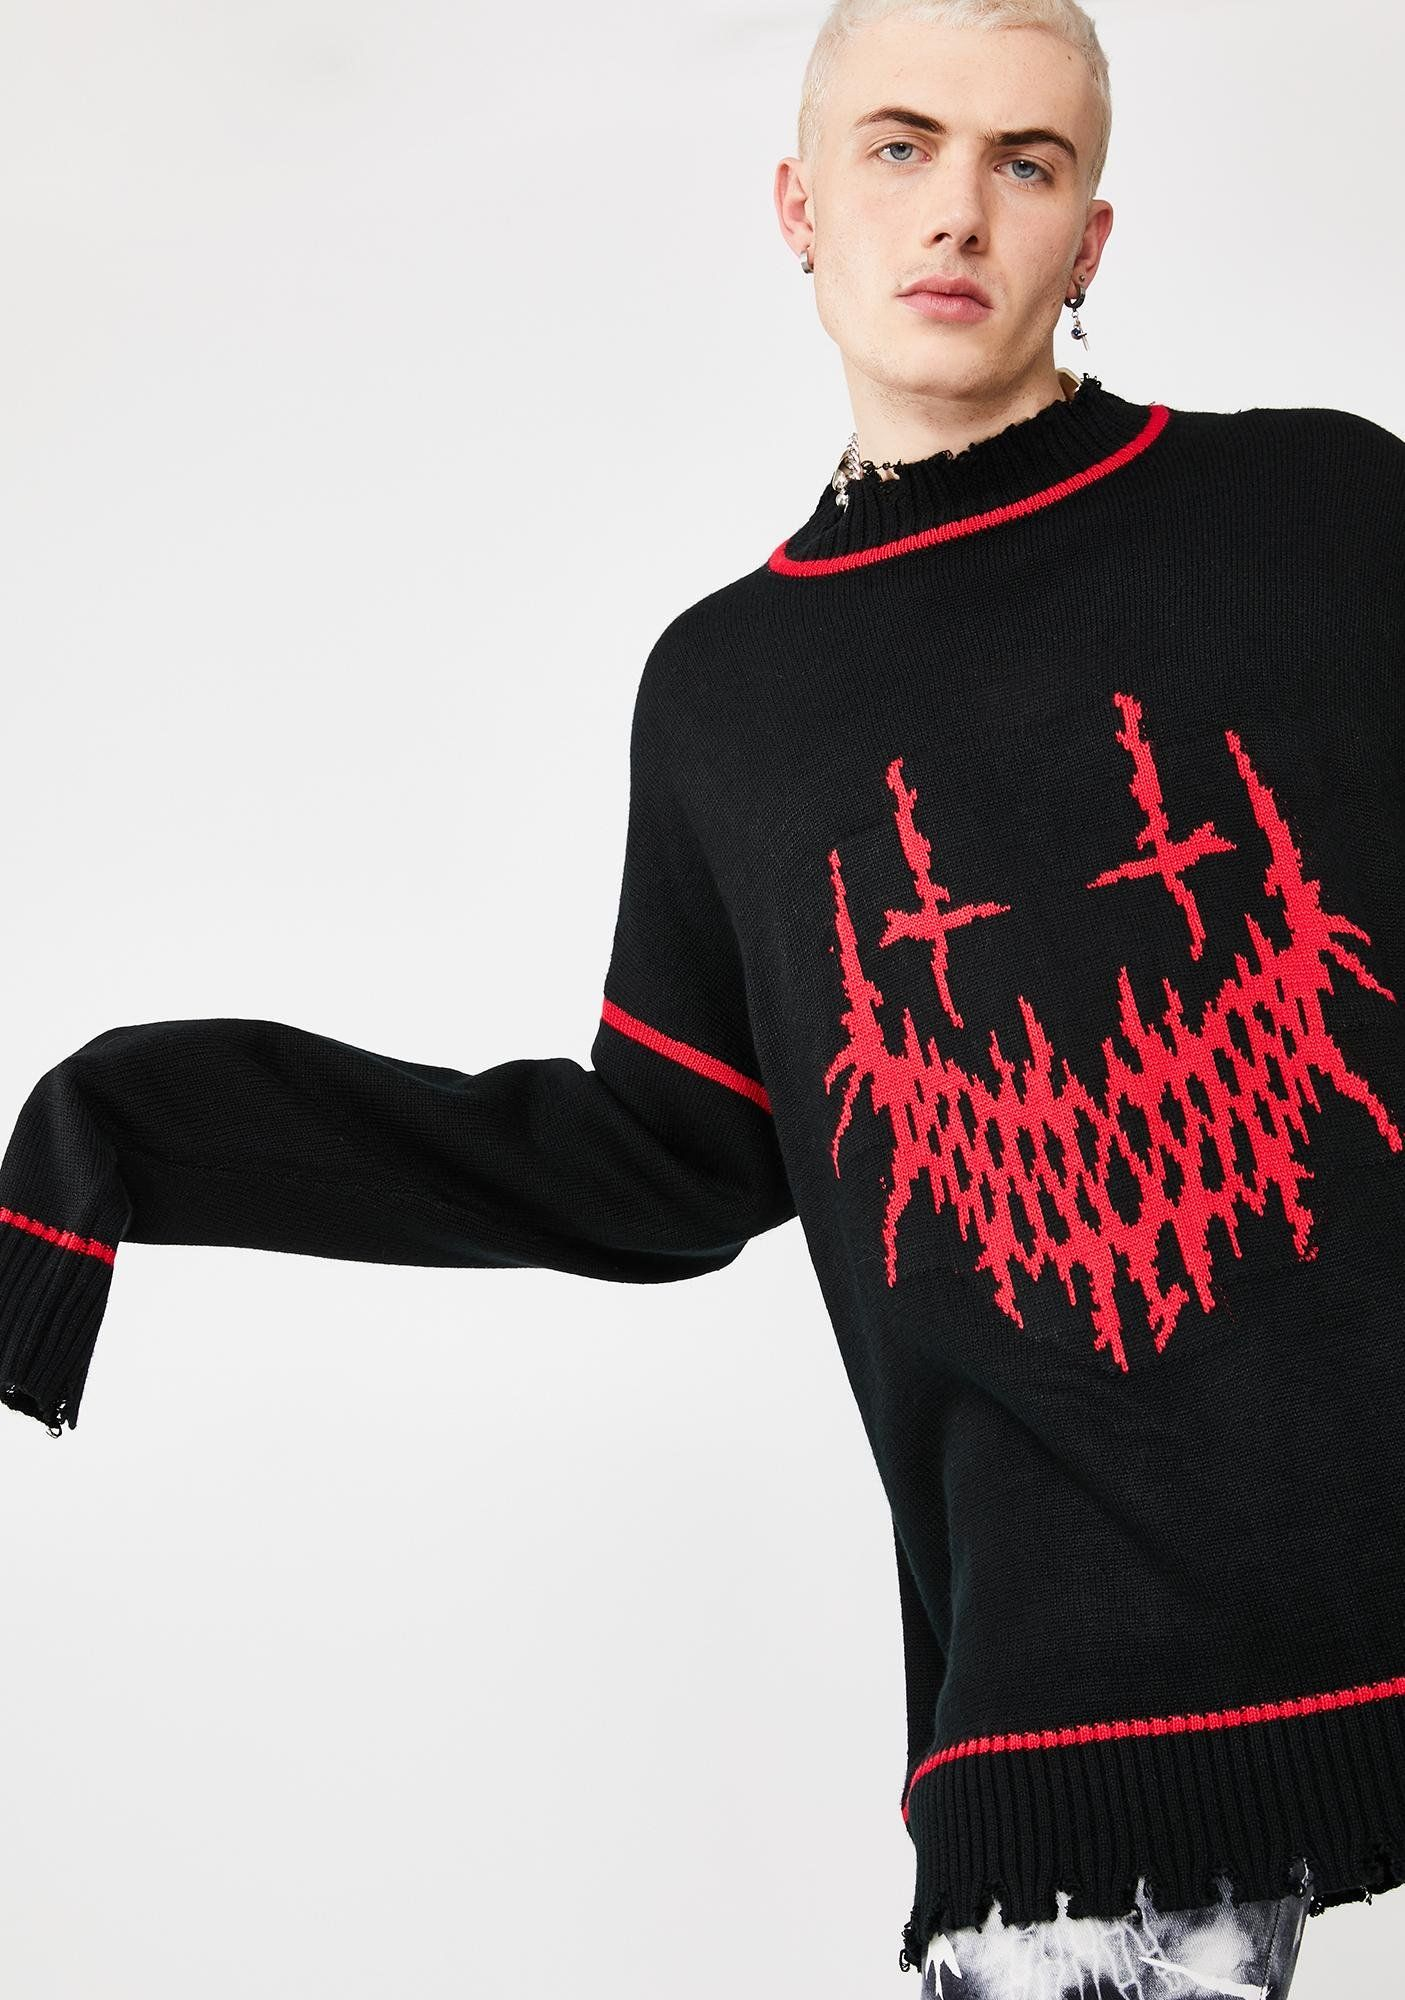 Evil Smile Oversized Knit Sweater #oversizedknitsweaters